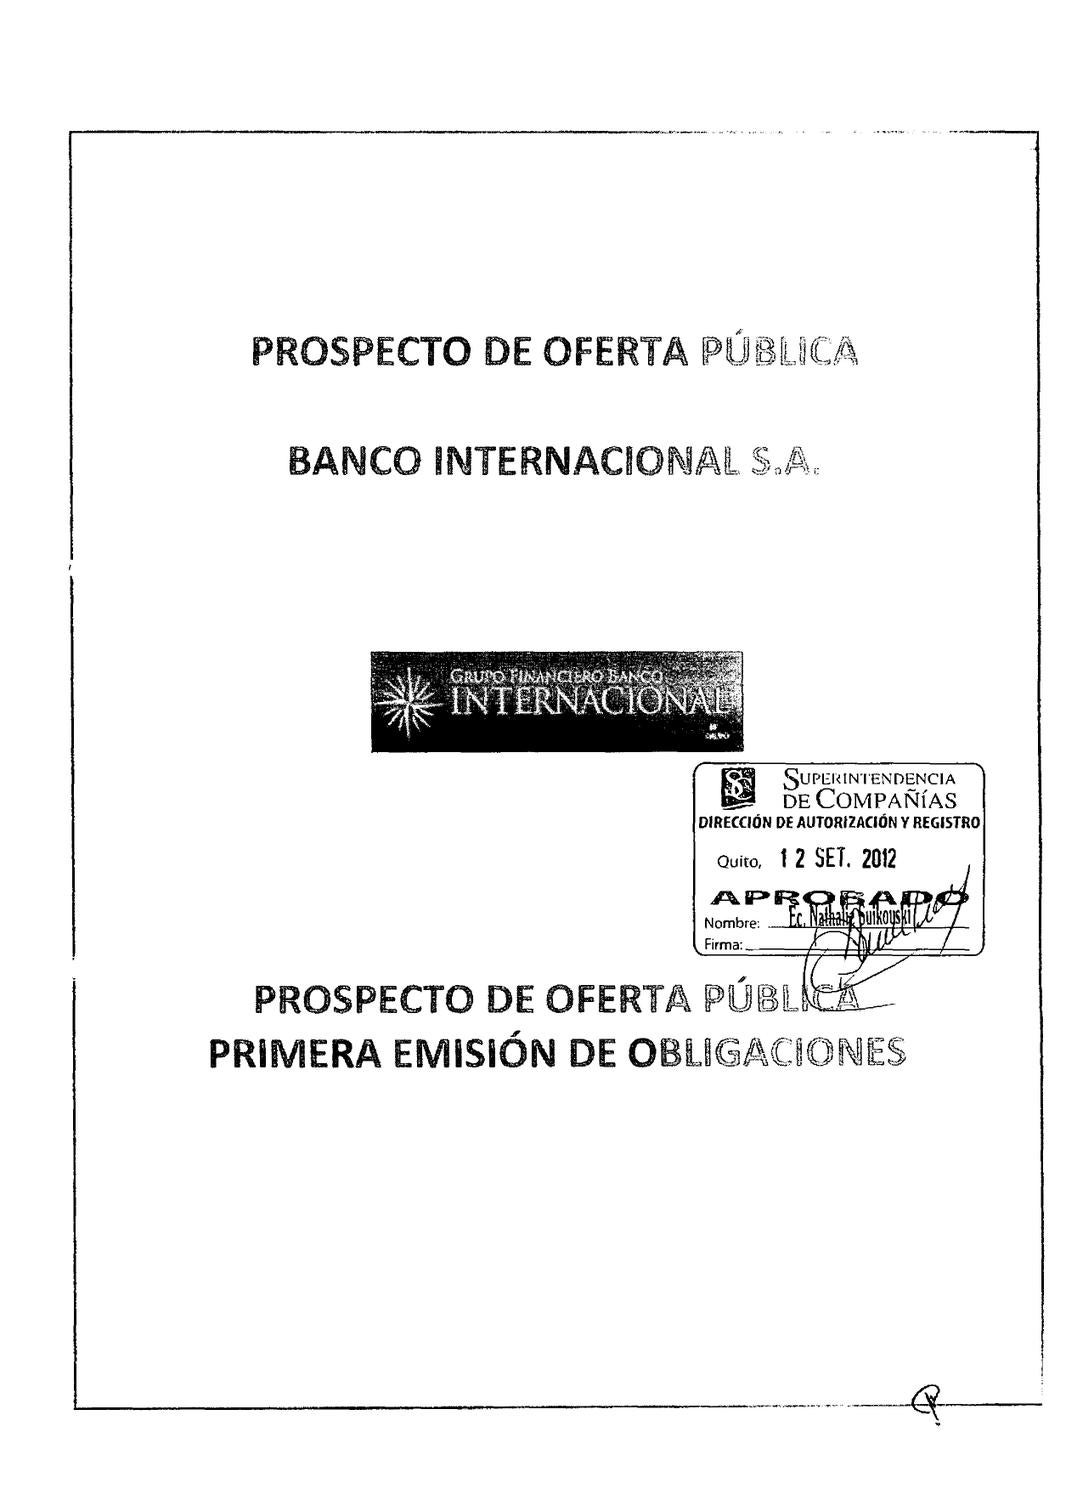 Prospecto Bco.Inter OBL 26092012 by Bolsa de Valores de Quito - issuu